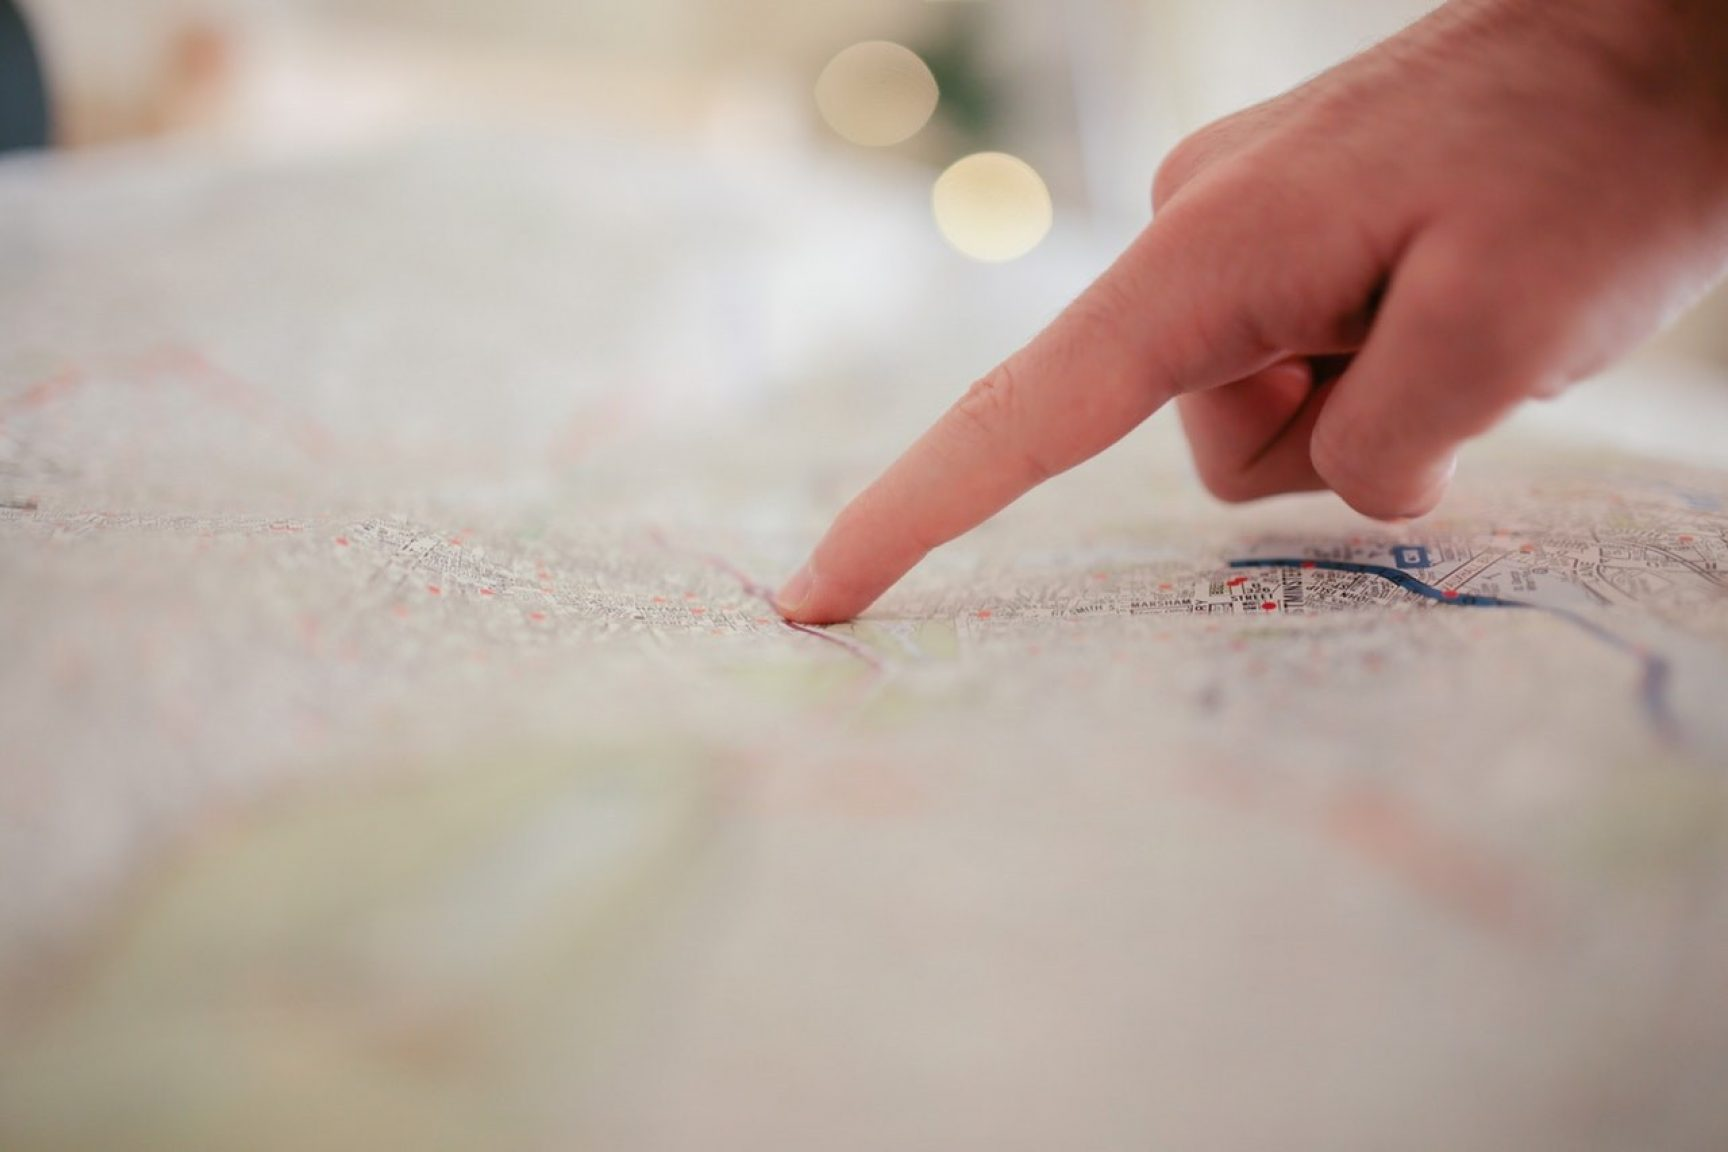 A hand pointing to something on a map.